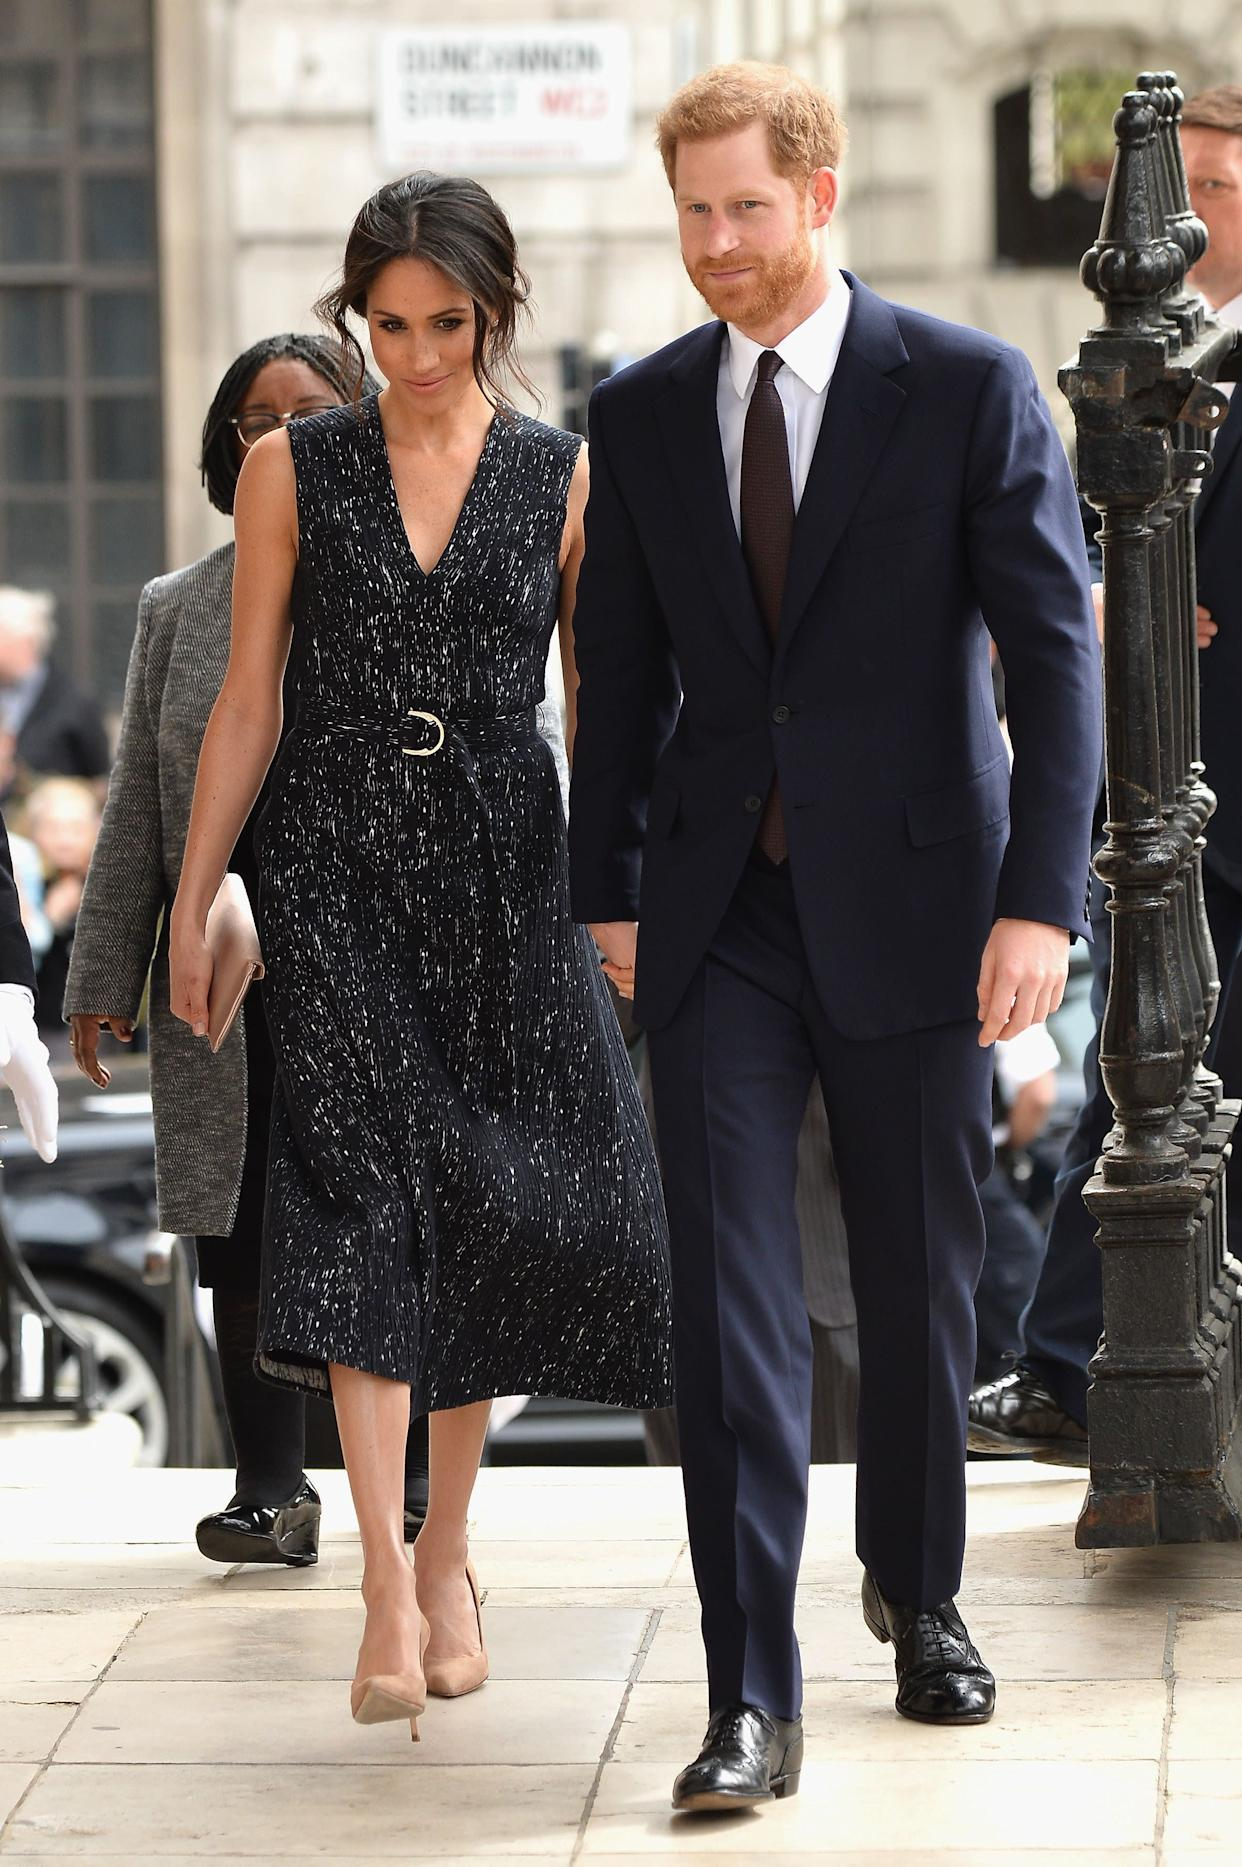 Prince Harry and the former actress attend the 25th Anniversary Memorial Service to celebrate the life and legacy of Stephen Lawrence at St. Martin-in-the-Fields on April 23 in London.